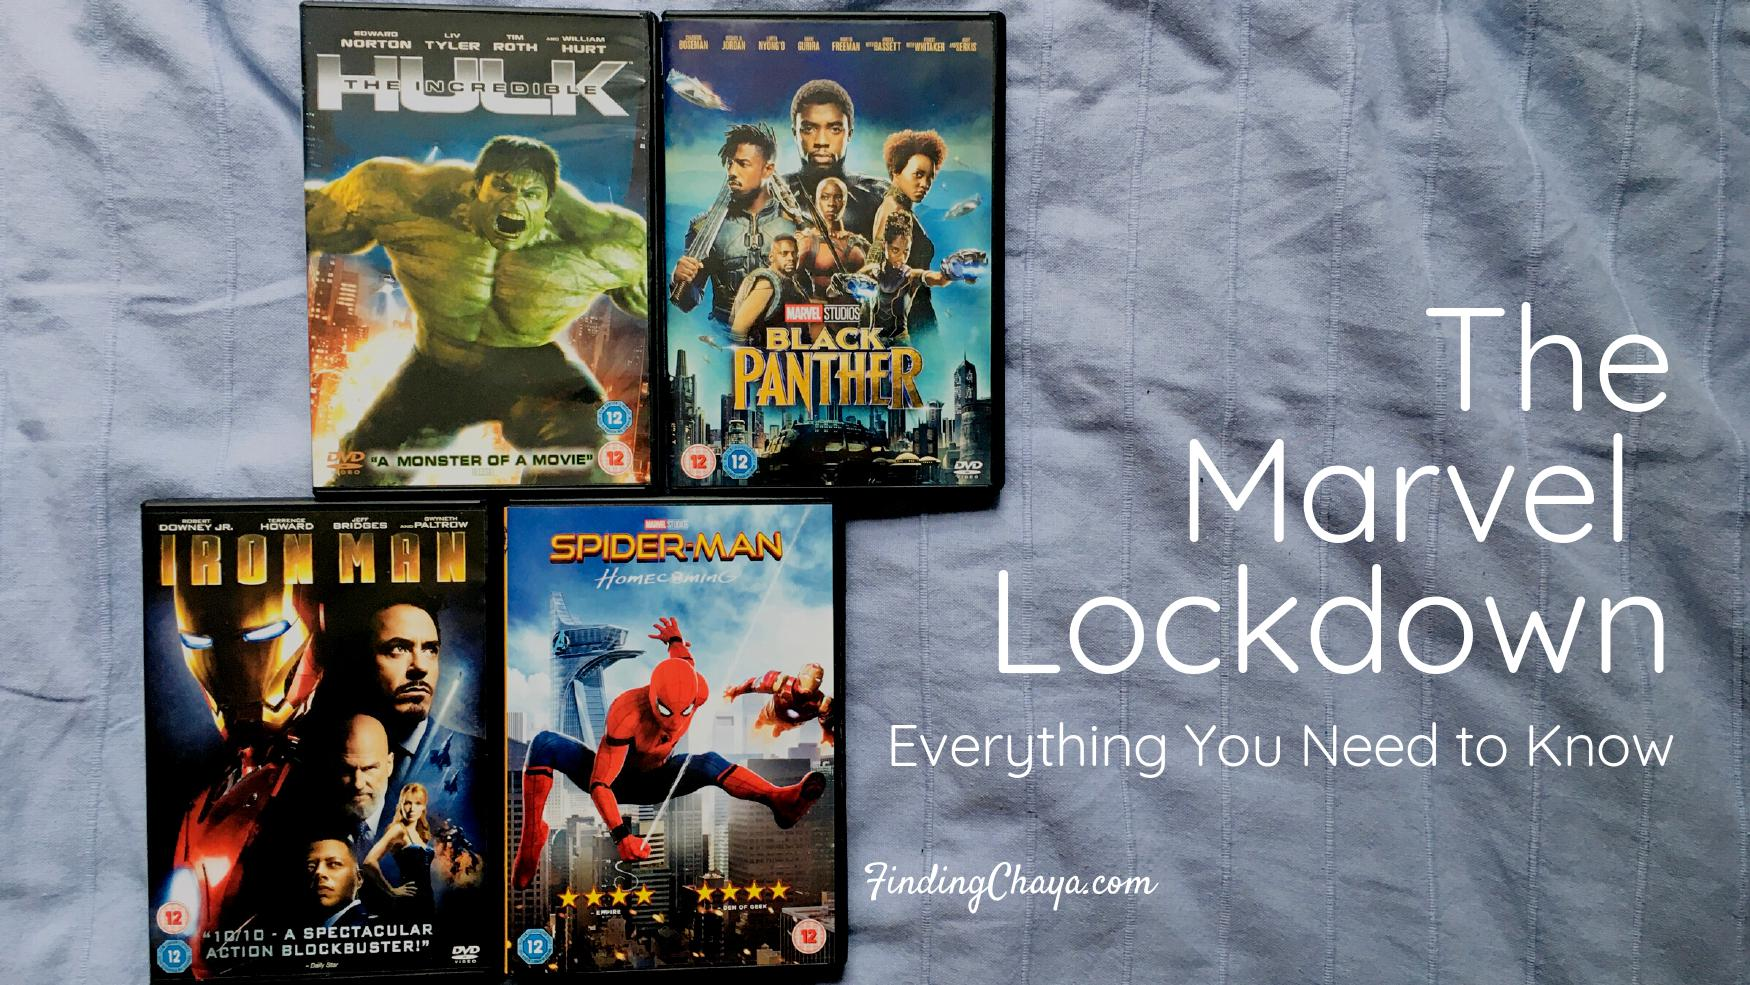 The Marvel Lockdown || Everything You Need to Know